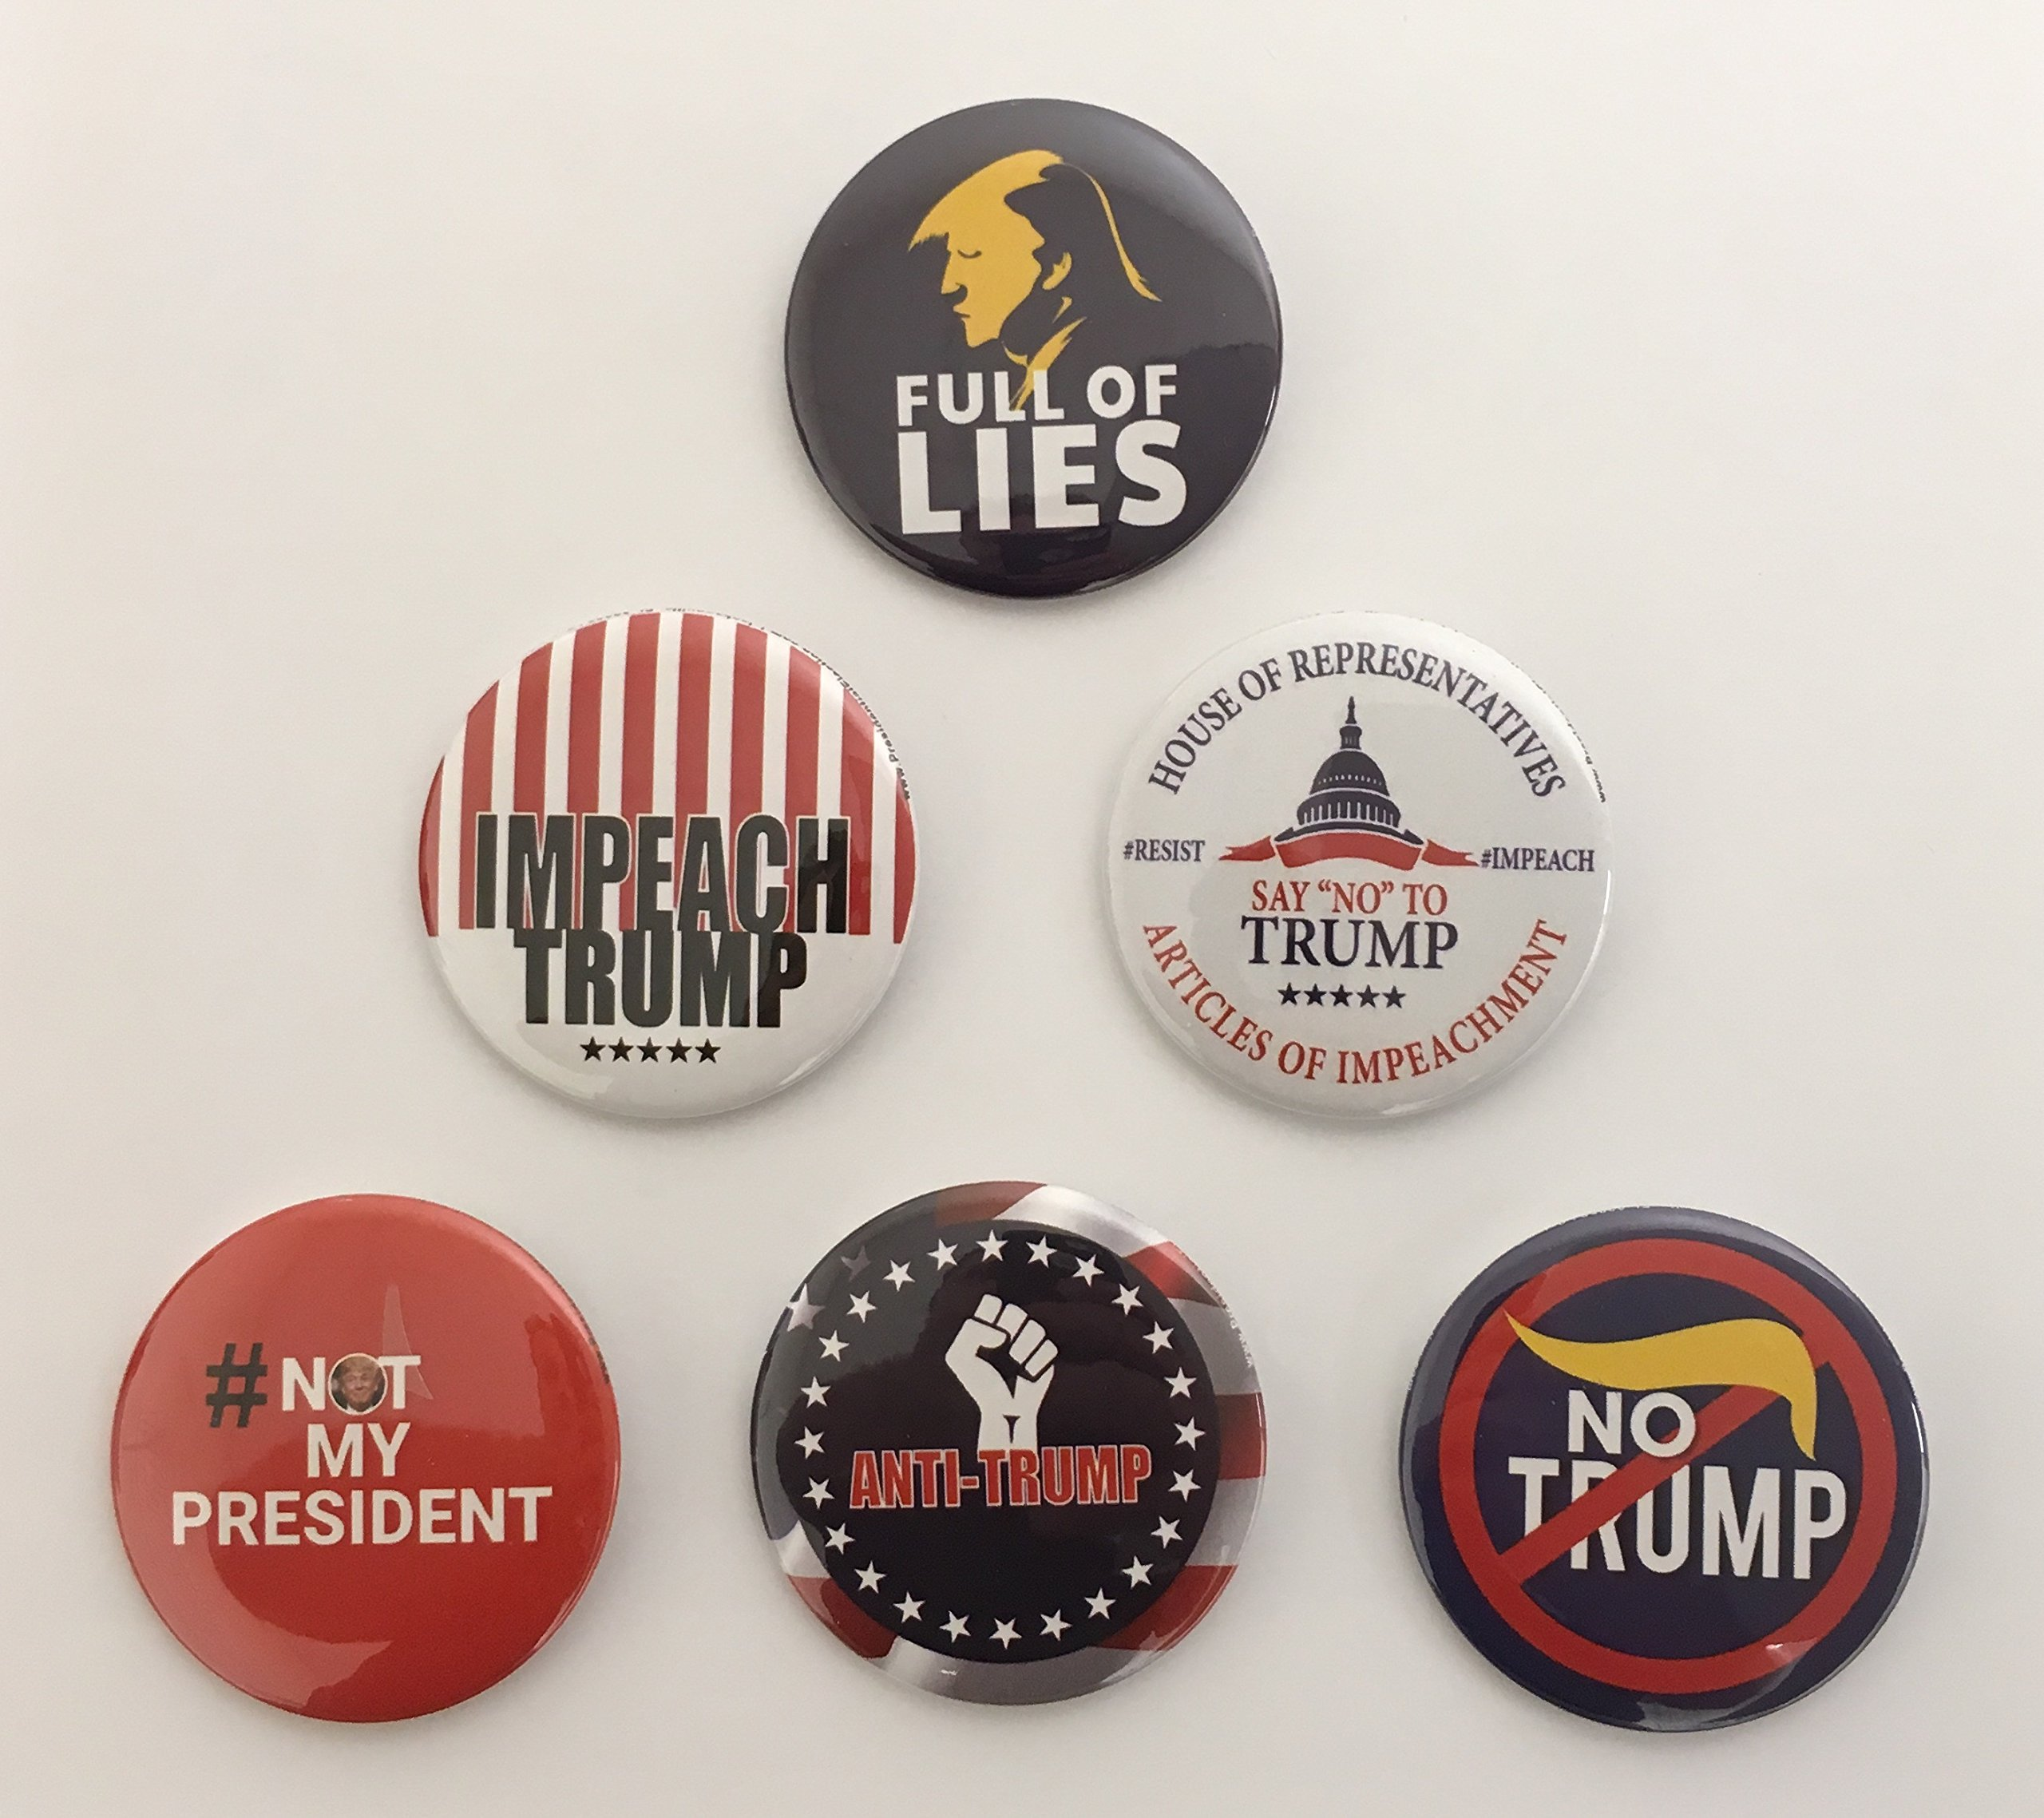 Complete-Set-Anti-Trump-Campaign-Button-Set-of-6-NOTRUMP-ALL